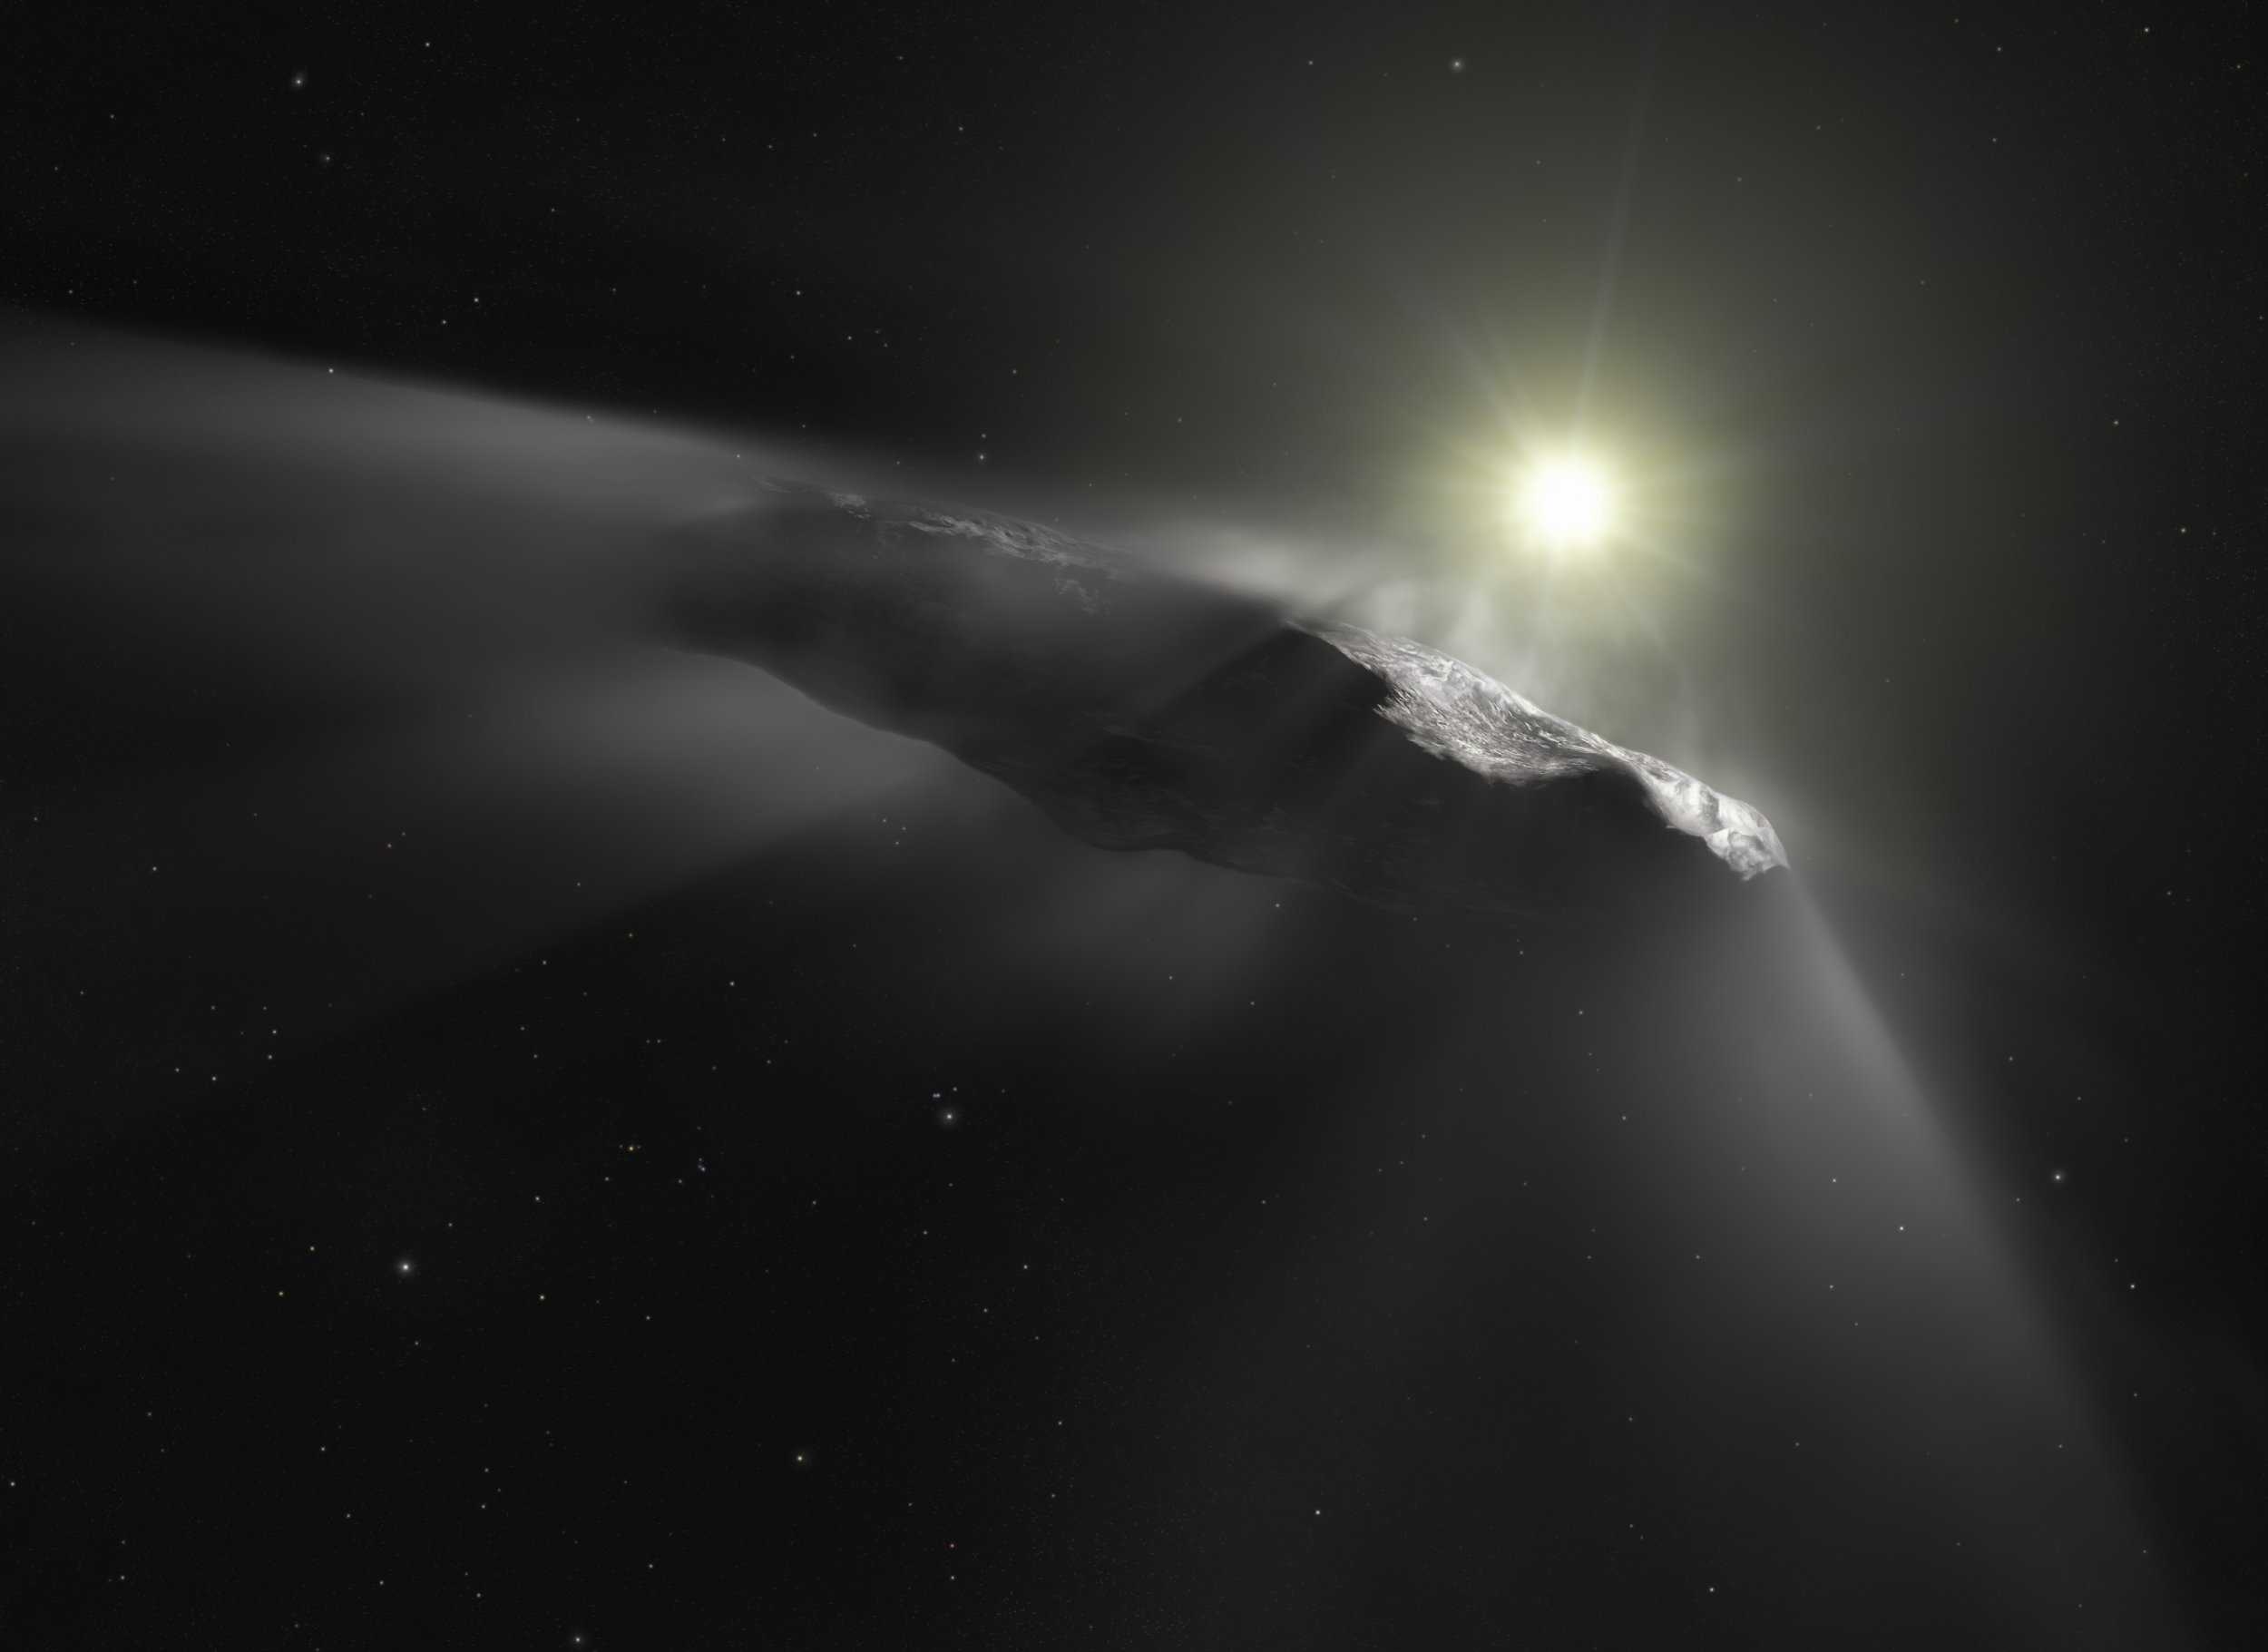 The biggest mystery about an alien asteroid from deep space called 'Oumuamua has finally been solved